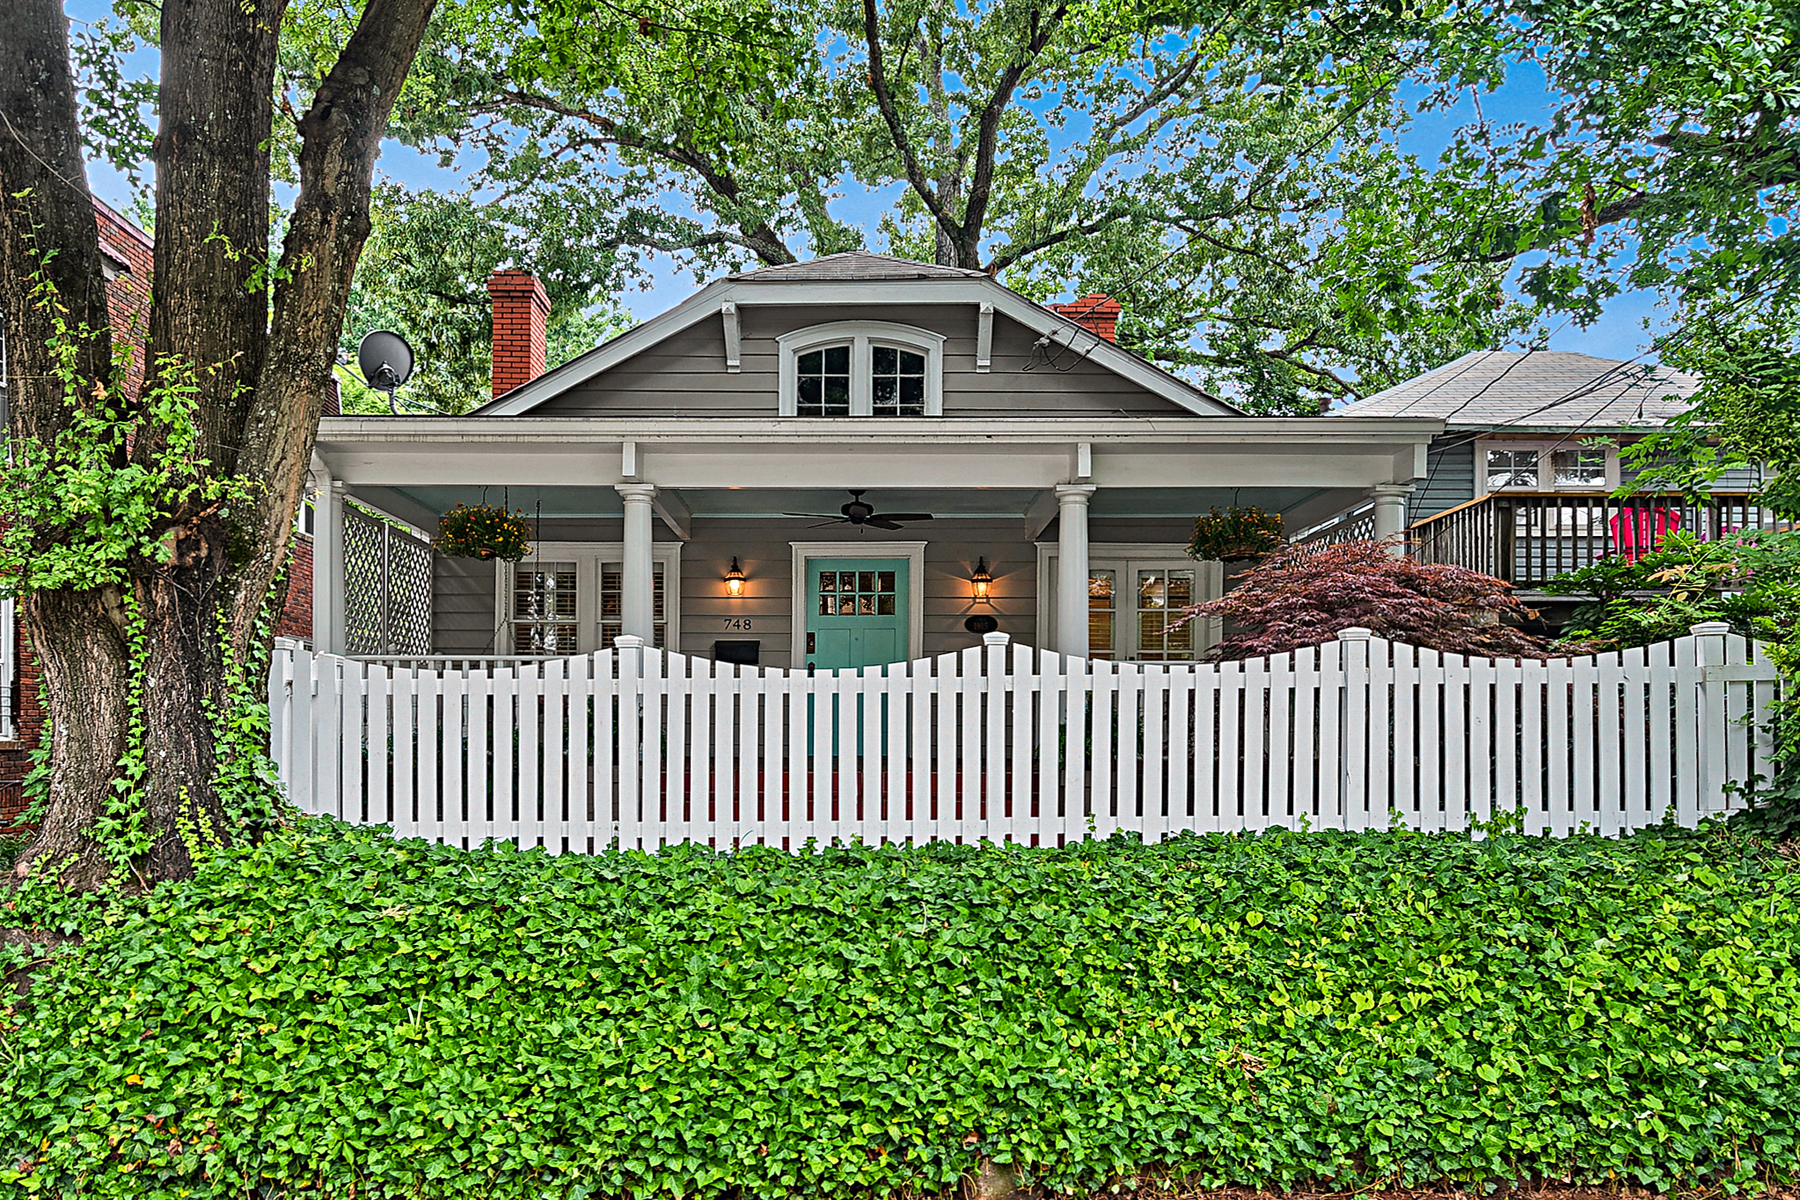 Single Family Home for Sale at Sweet Bungalow Just A Couple Blocks From Ponce City Market And Whole Foods 748 Barnett St Atlanta, Georgia 30306 United States